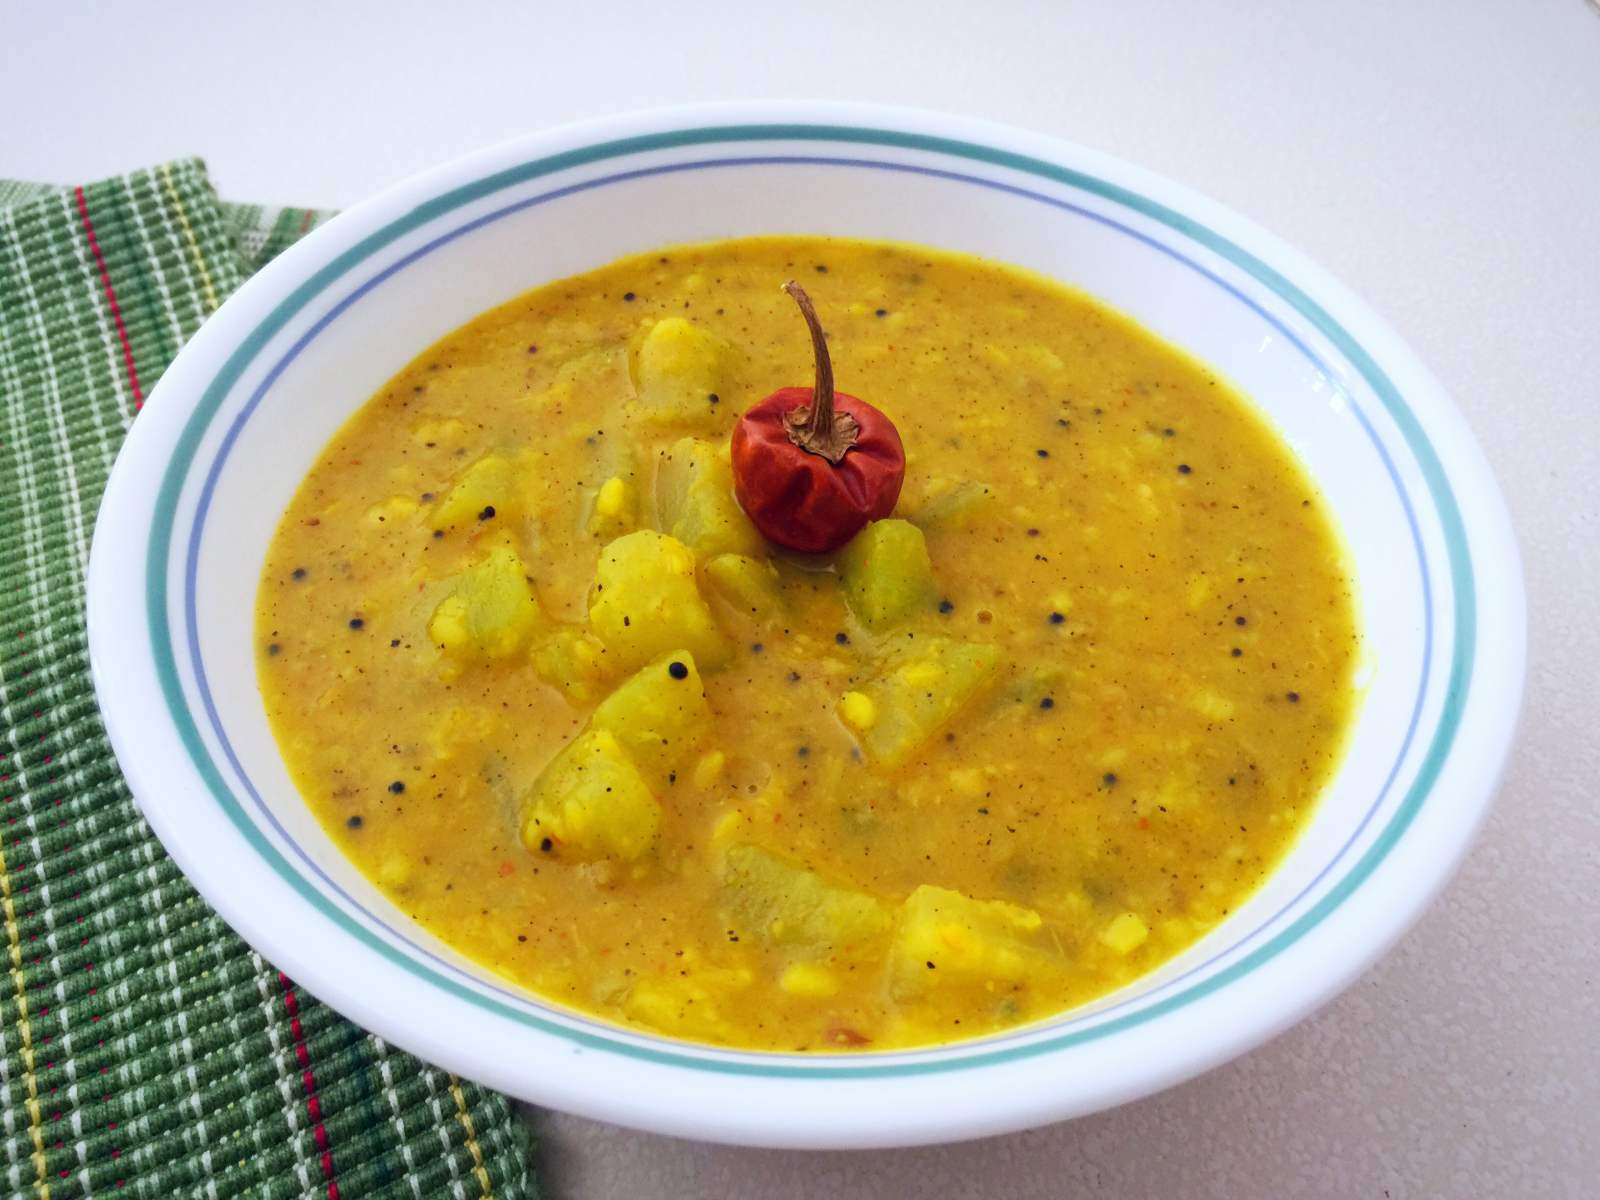 Chow_Chow_Milagu_Kootu_Recipe_Chayote_Squash_Cooked_in_Peppery_Lentil_Curry